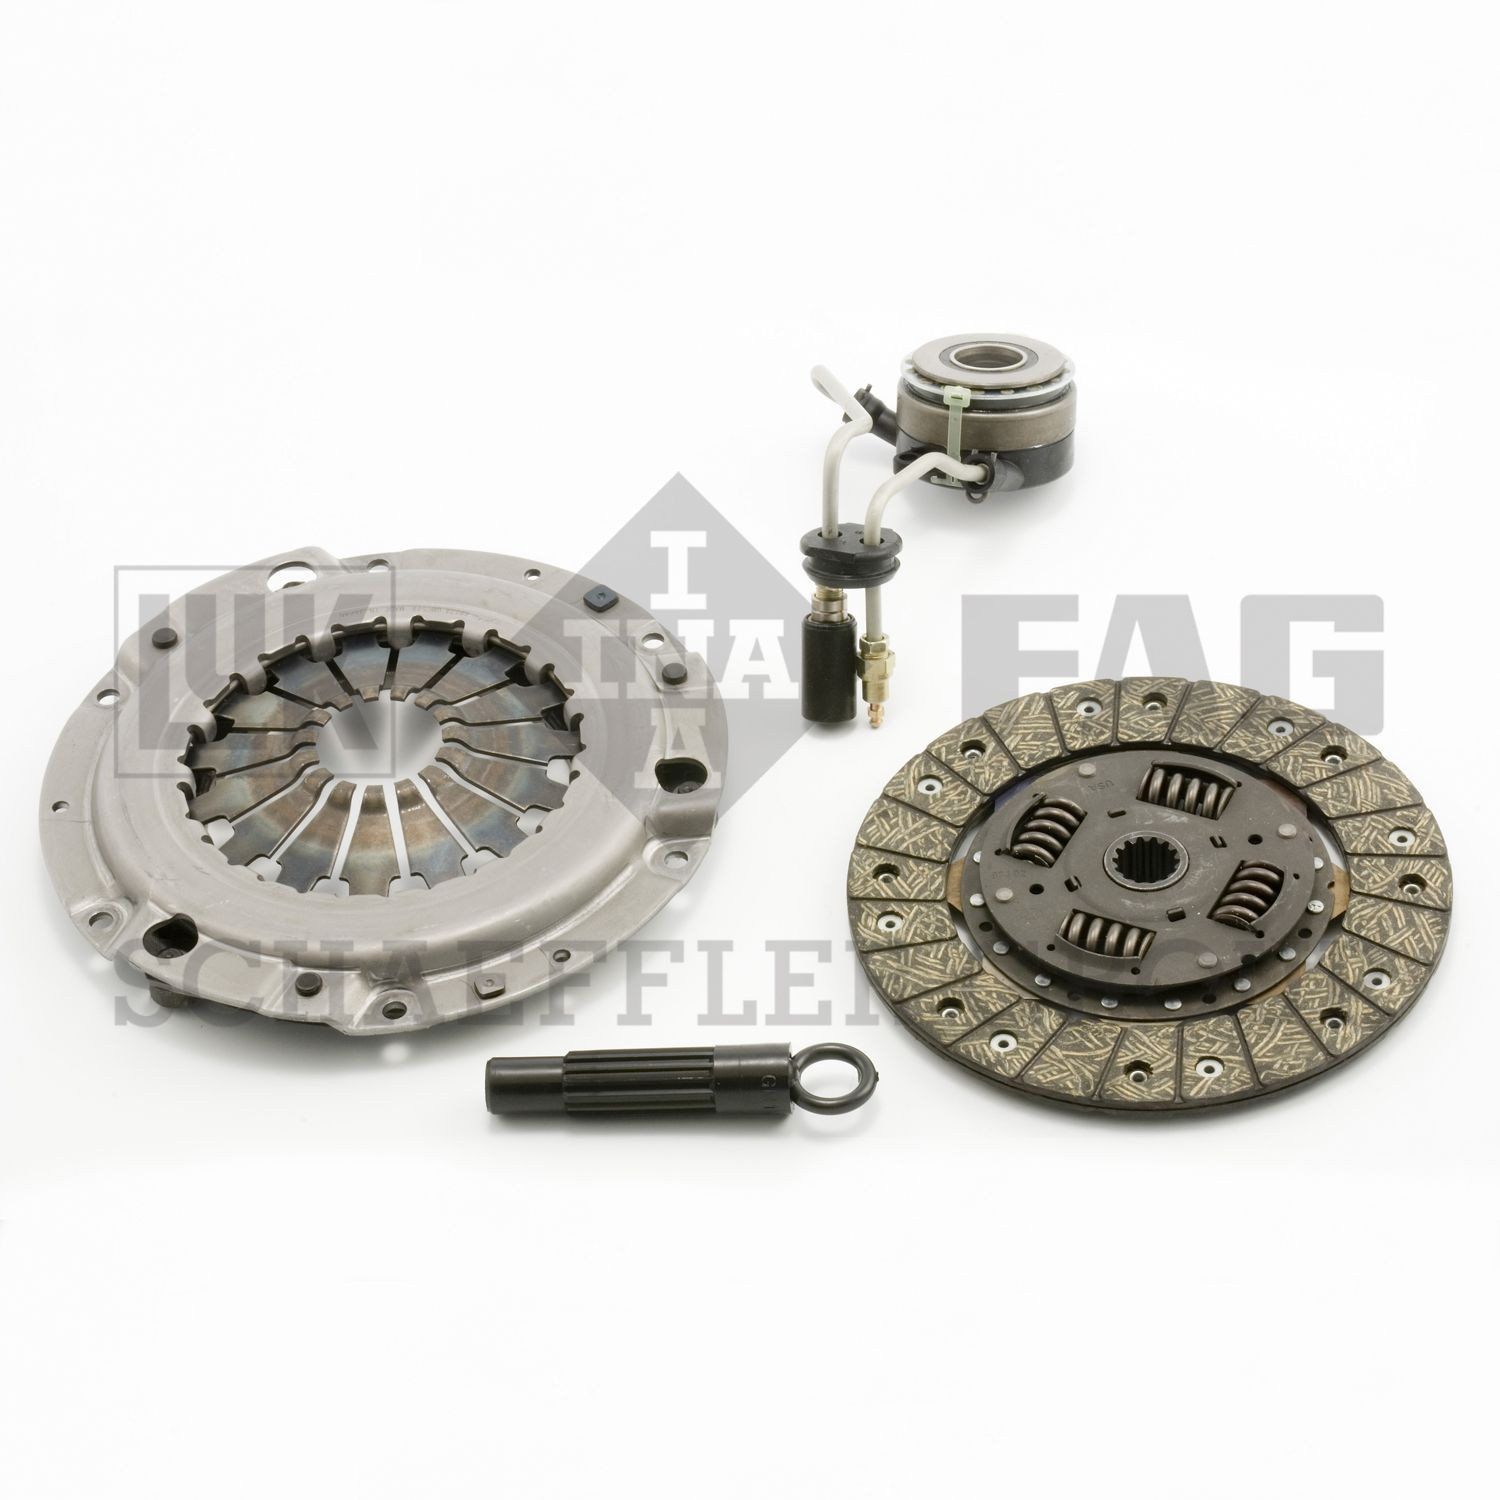 1998 Pontiac Grand Am Clutch Kit Lk 04 158